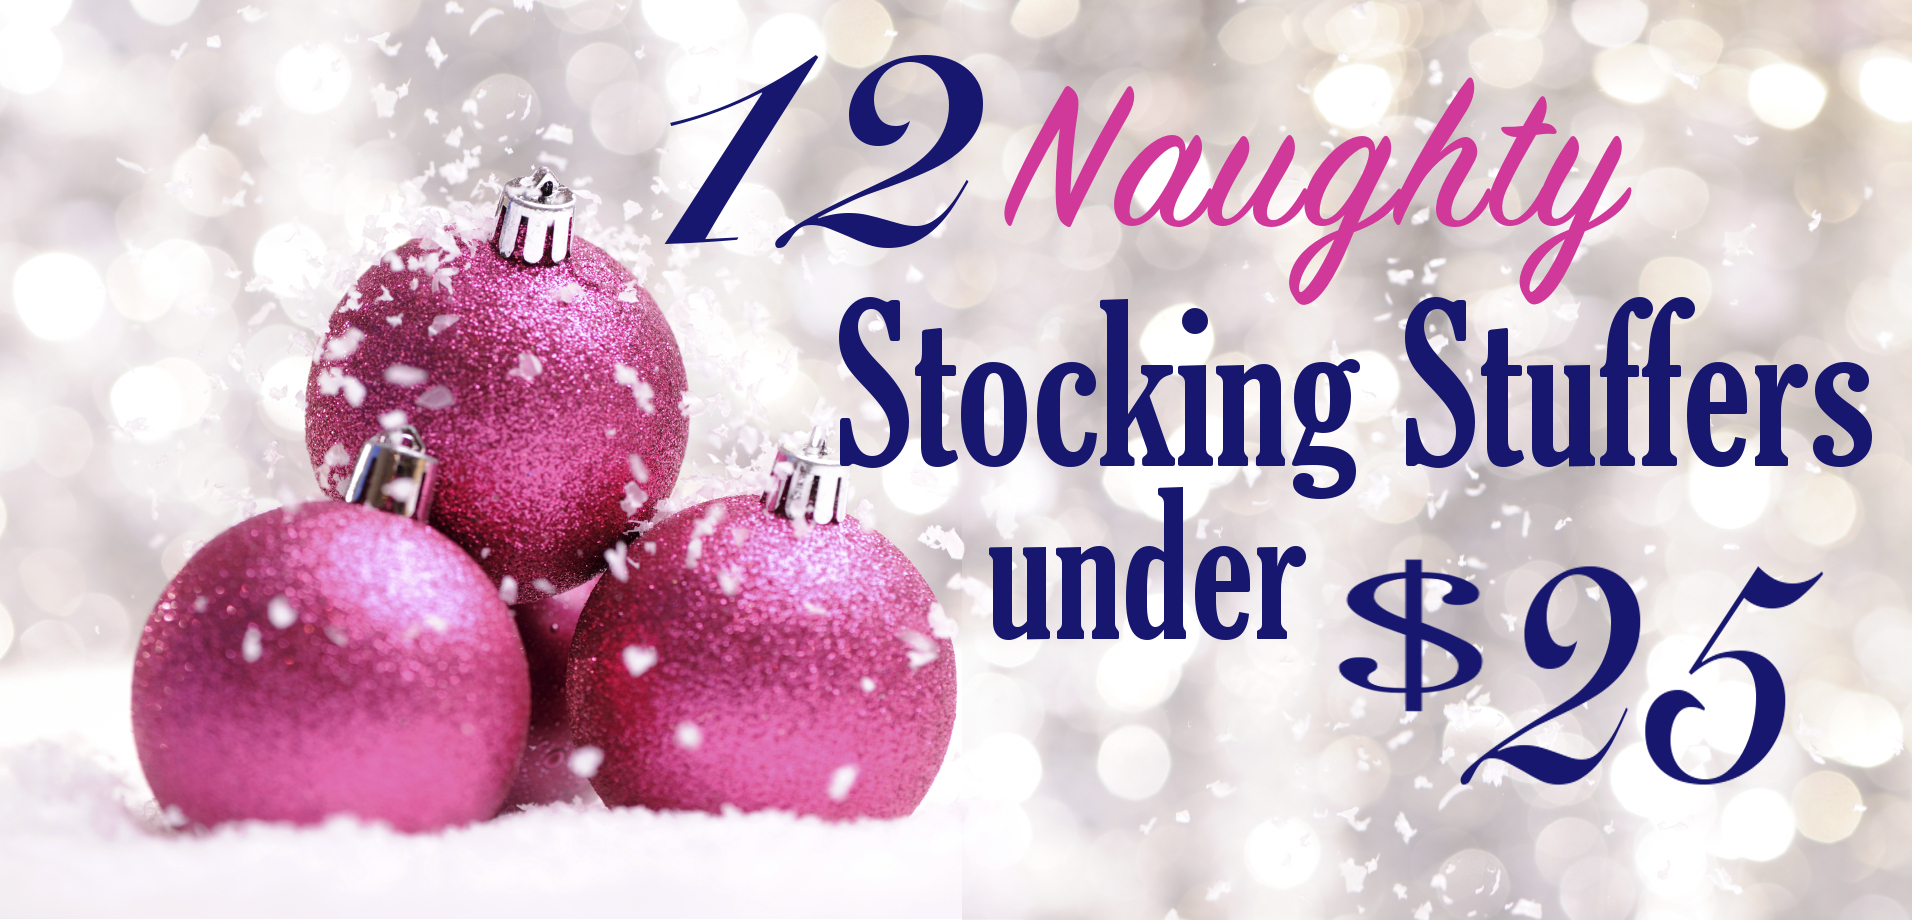 12 Naughty Stocking Stuffers Under $25 Velvet Box DFW